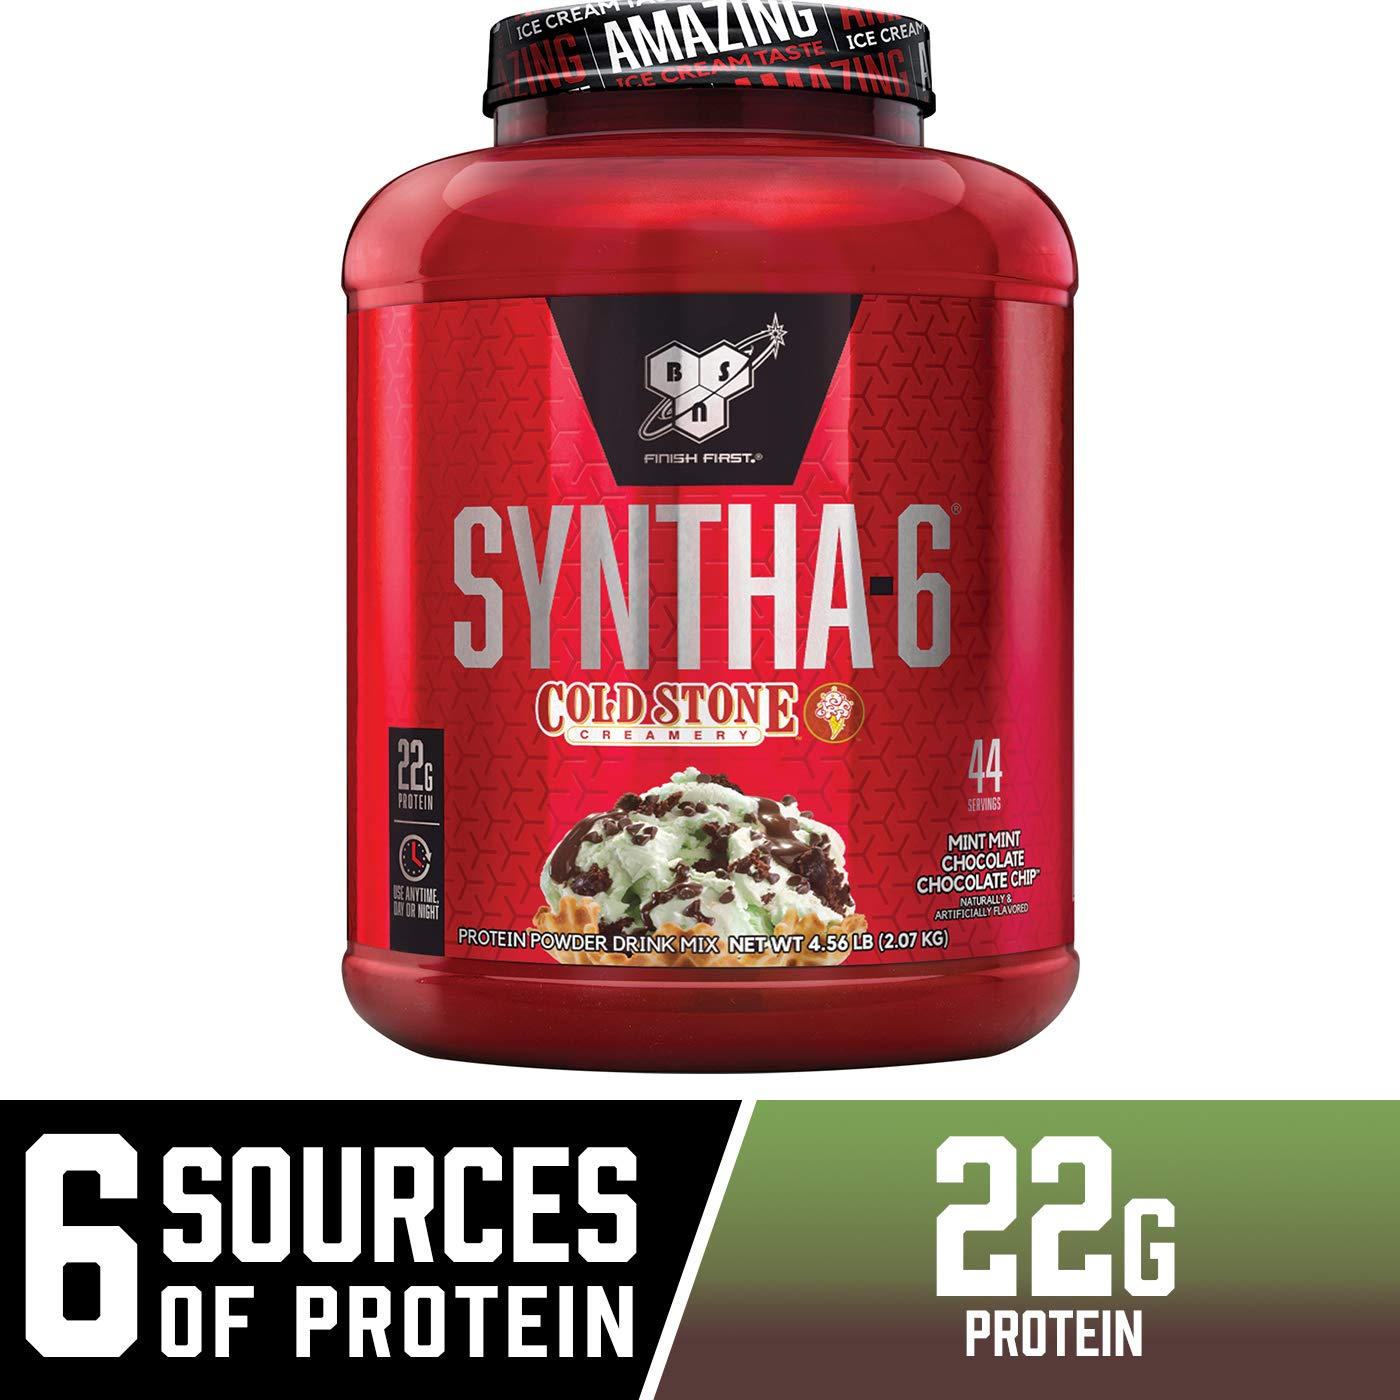 BSN Syntha-6 Whey Protein Powder, Cold Stone Creamery- Mint Mint Chocolate Chocolate Cake Flavor, Micellar Casein, Milk Protein Isolate Powder, 44 Servings by BSN